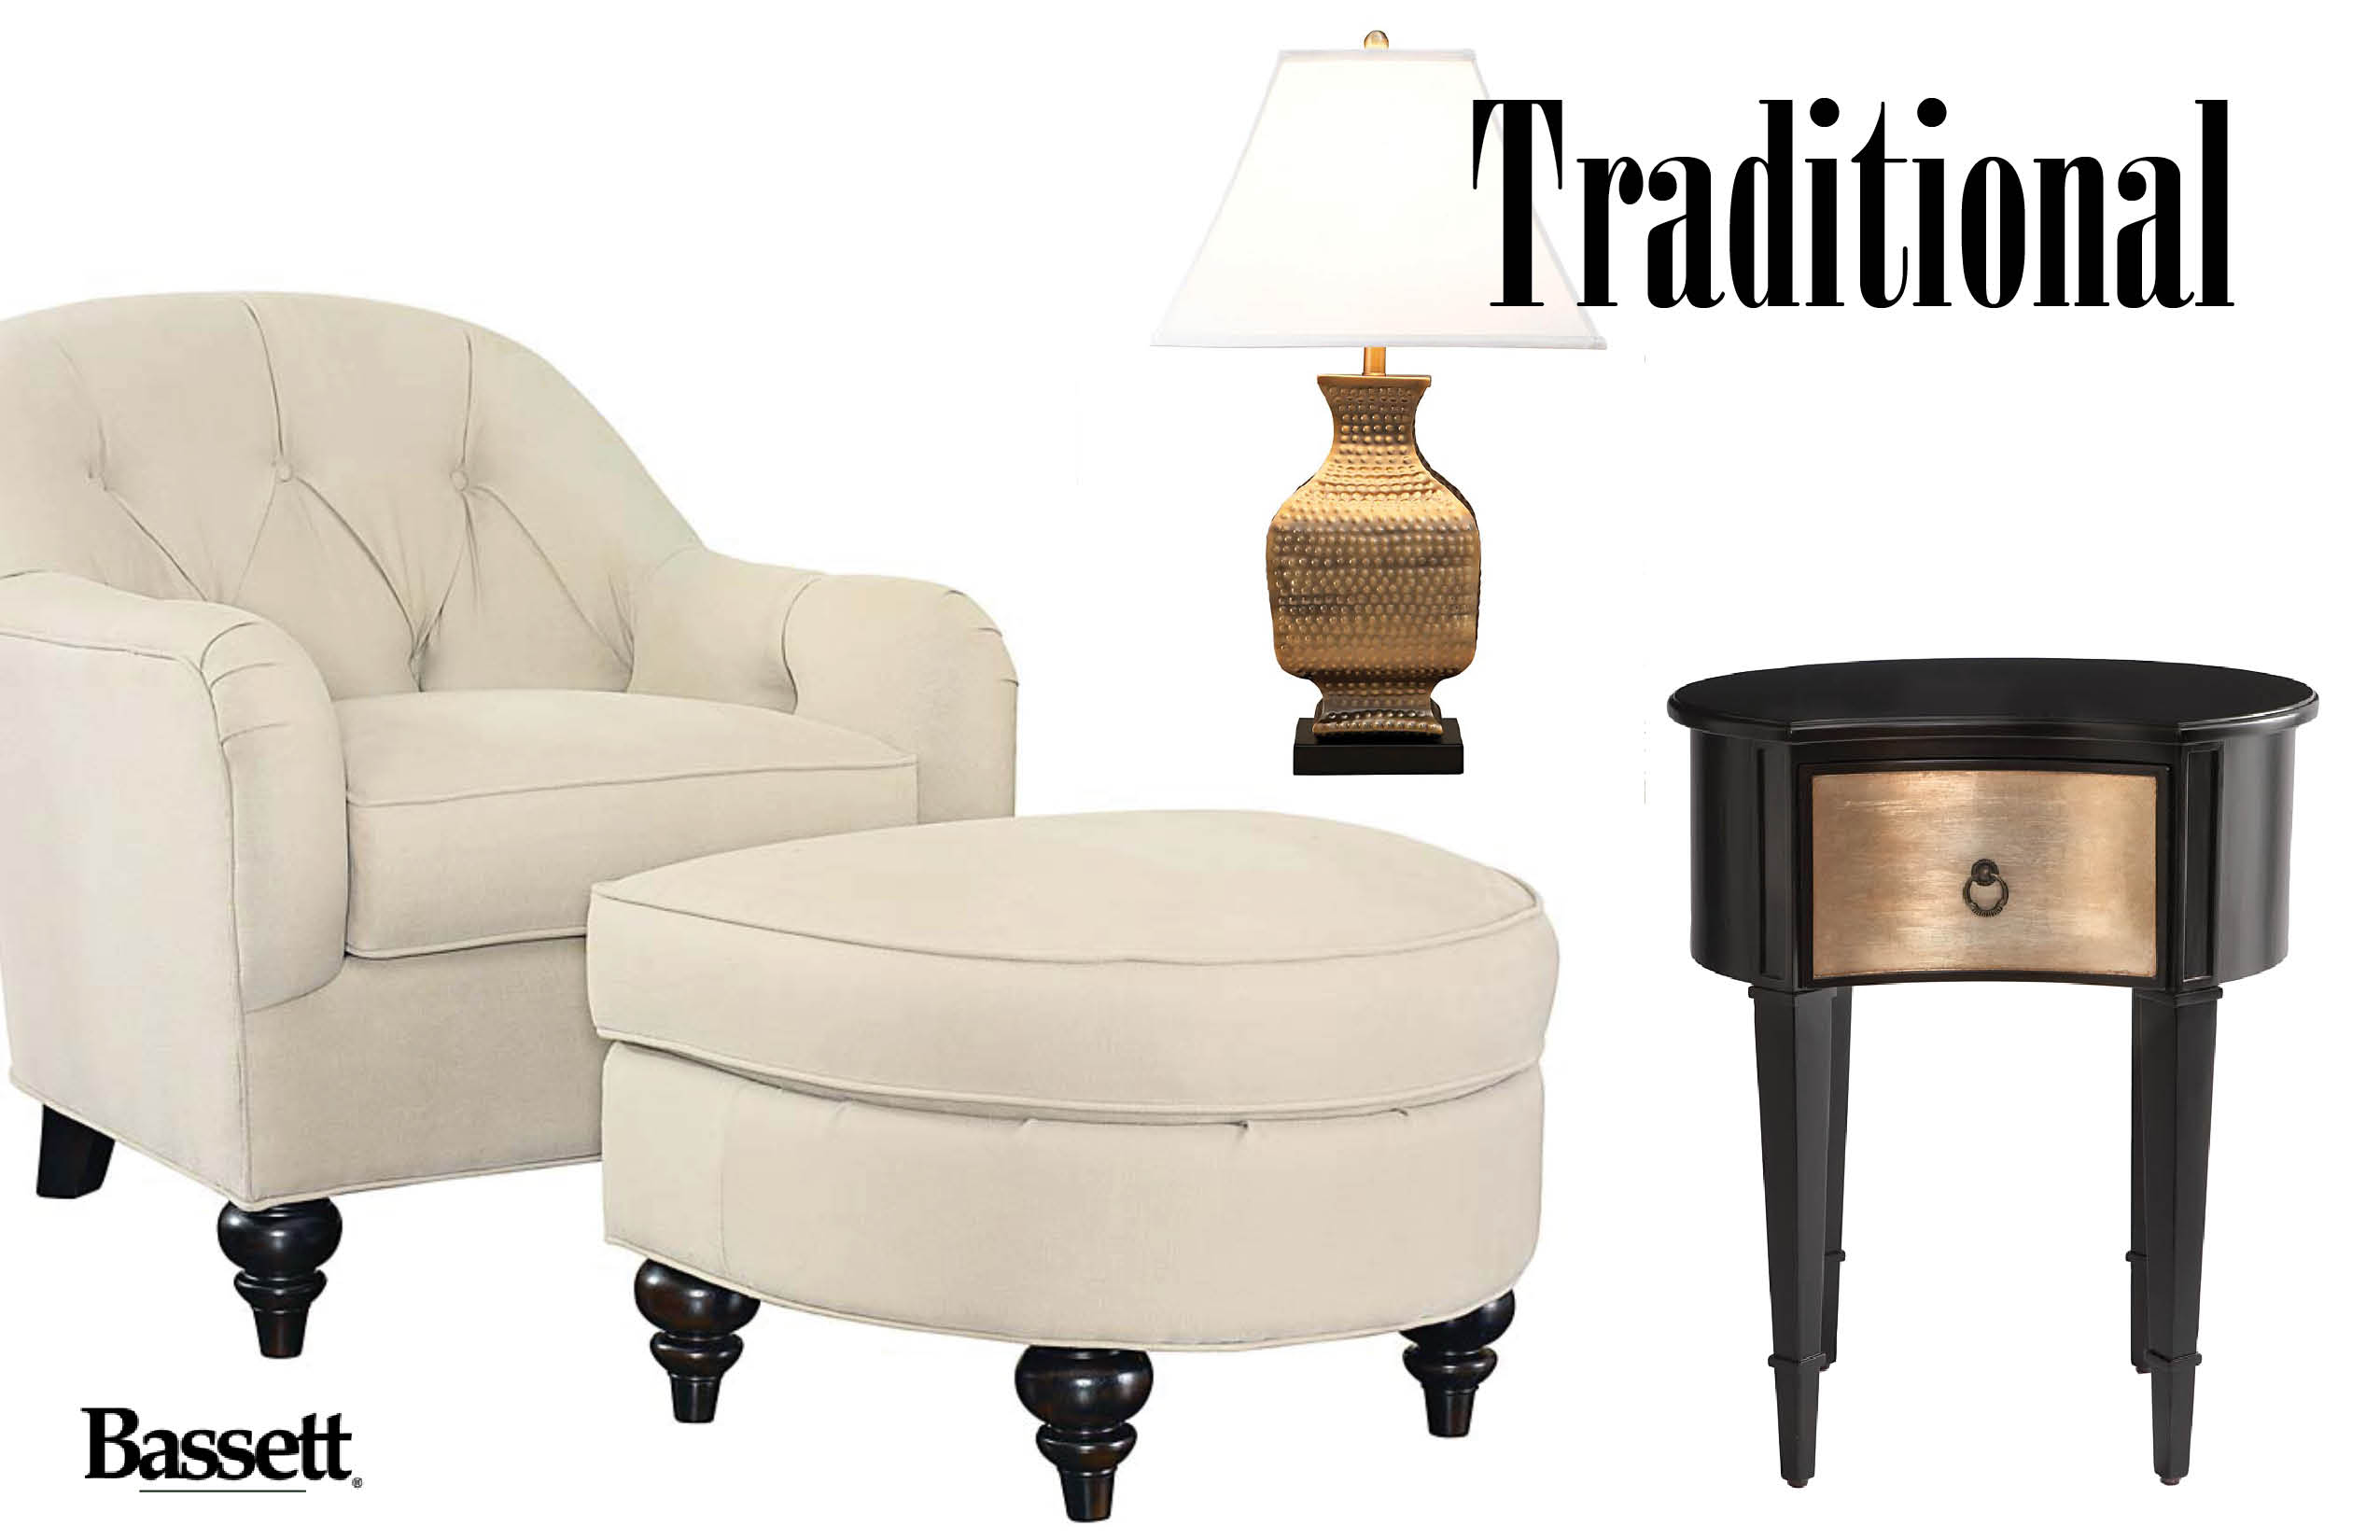 Exceptionnel When You Find That One Piece Of Furniture Or Accessory That You Just Canu0027t  Live Without, You Wonder How You Might Pair That Piece In Your Home With  Existing ...